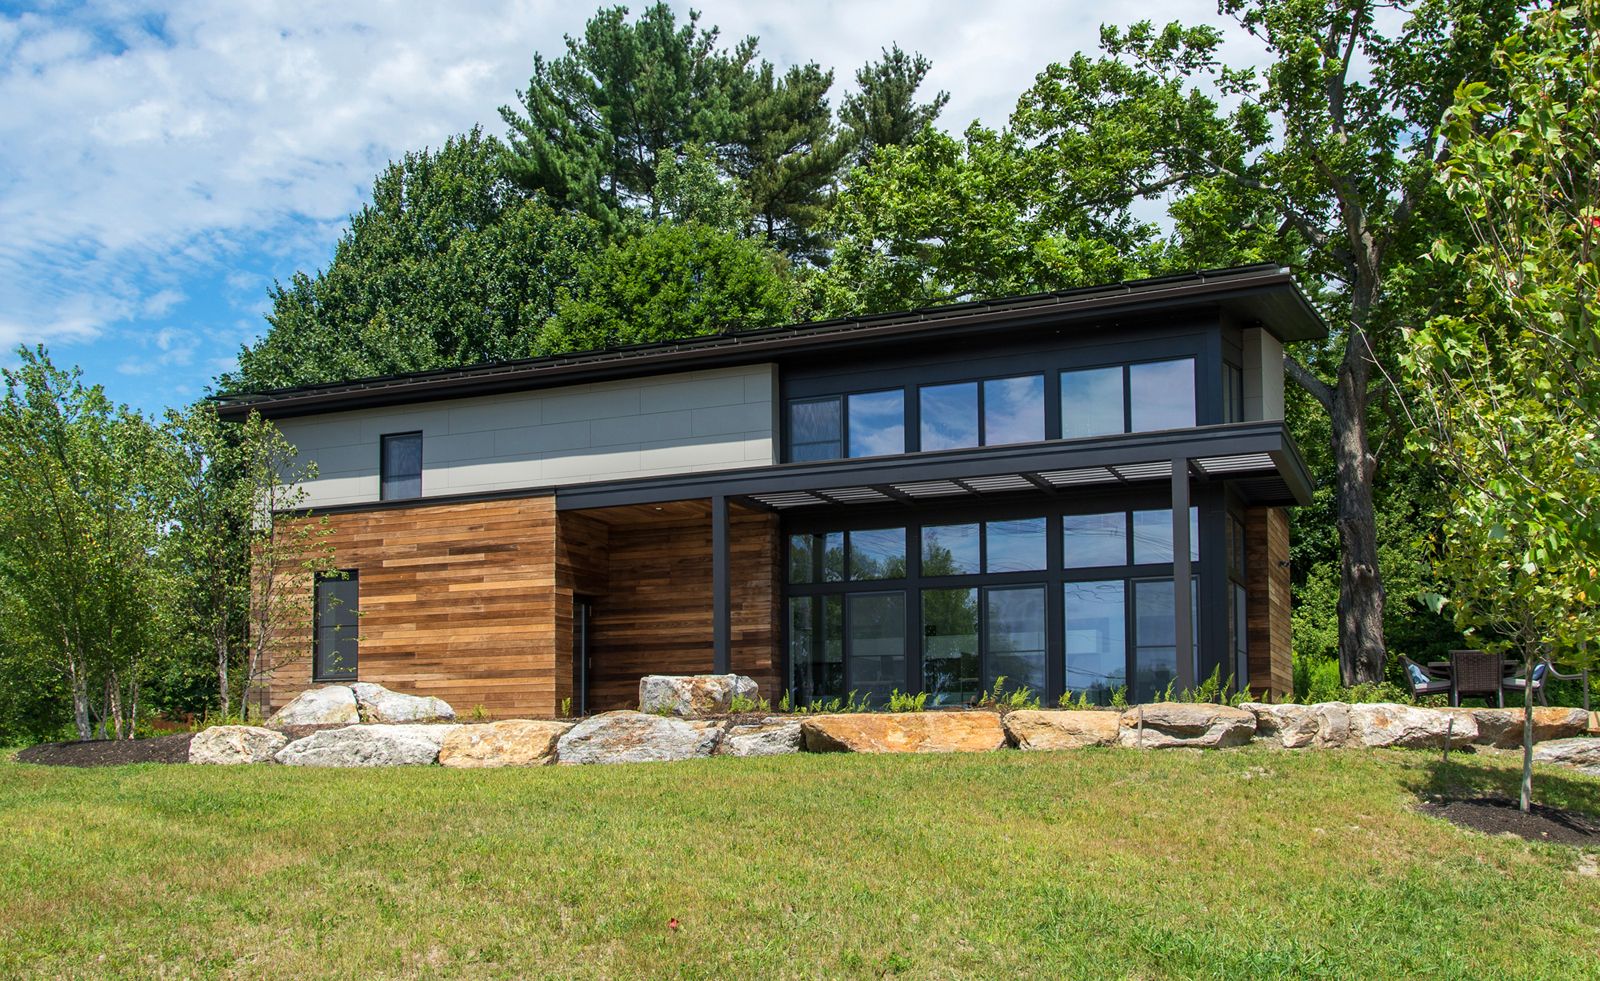 Viridescent House - Passive House Growth: A Look at Its Origins and Evolution